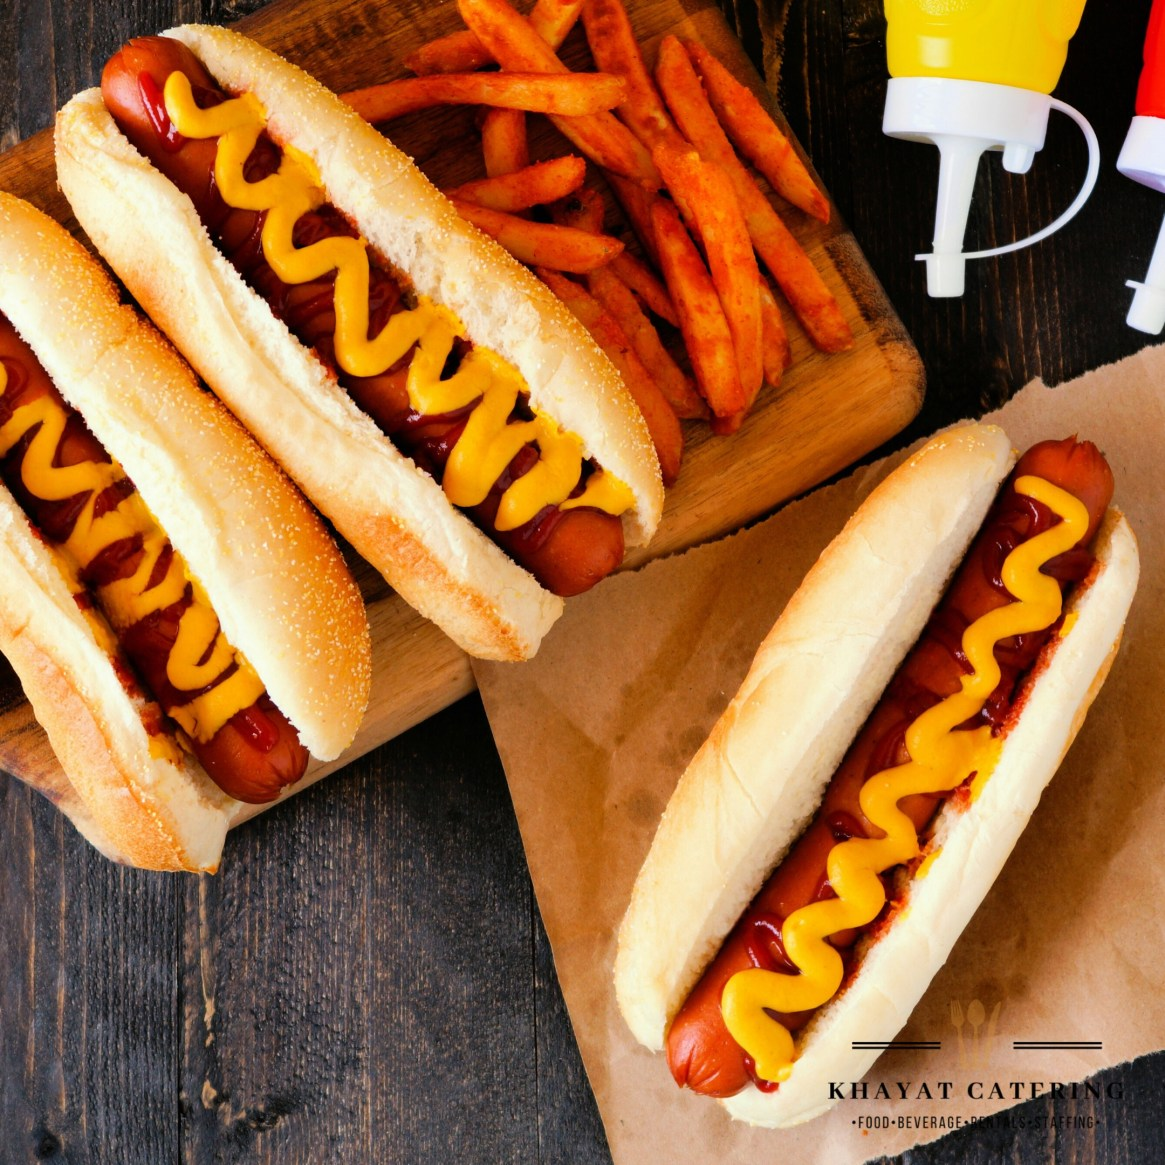 Khayat Catering hot dogs